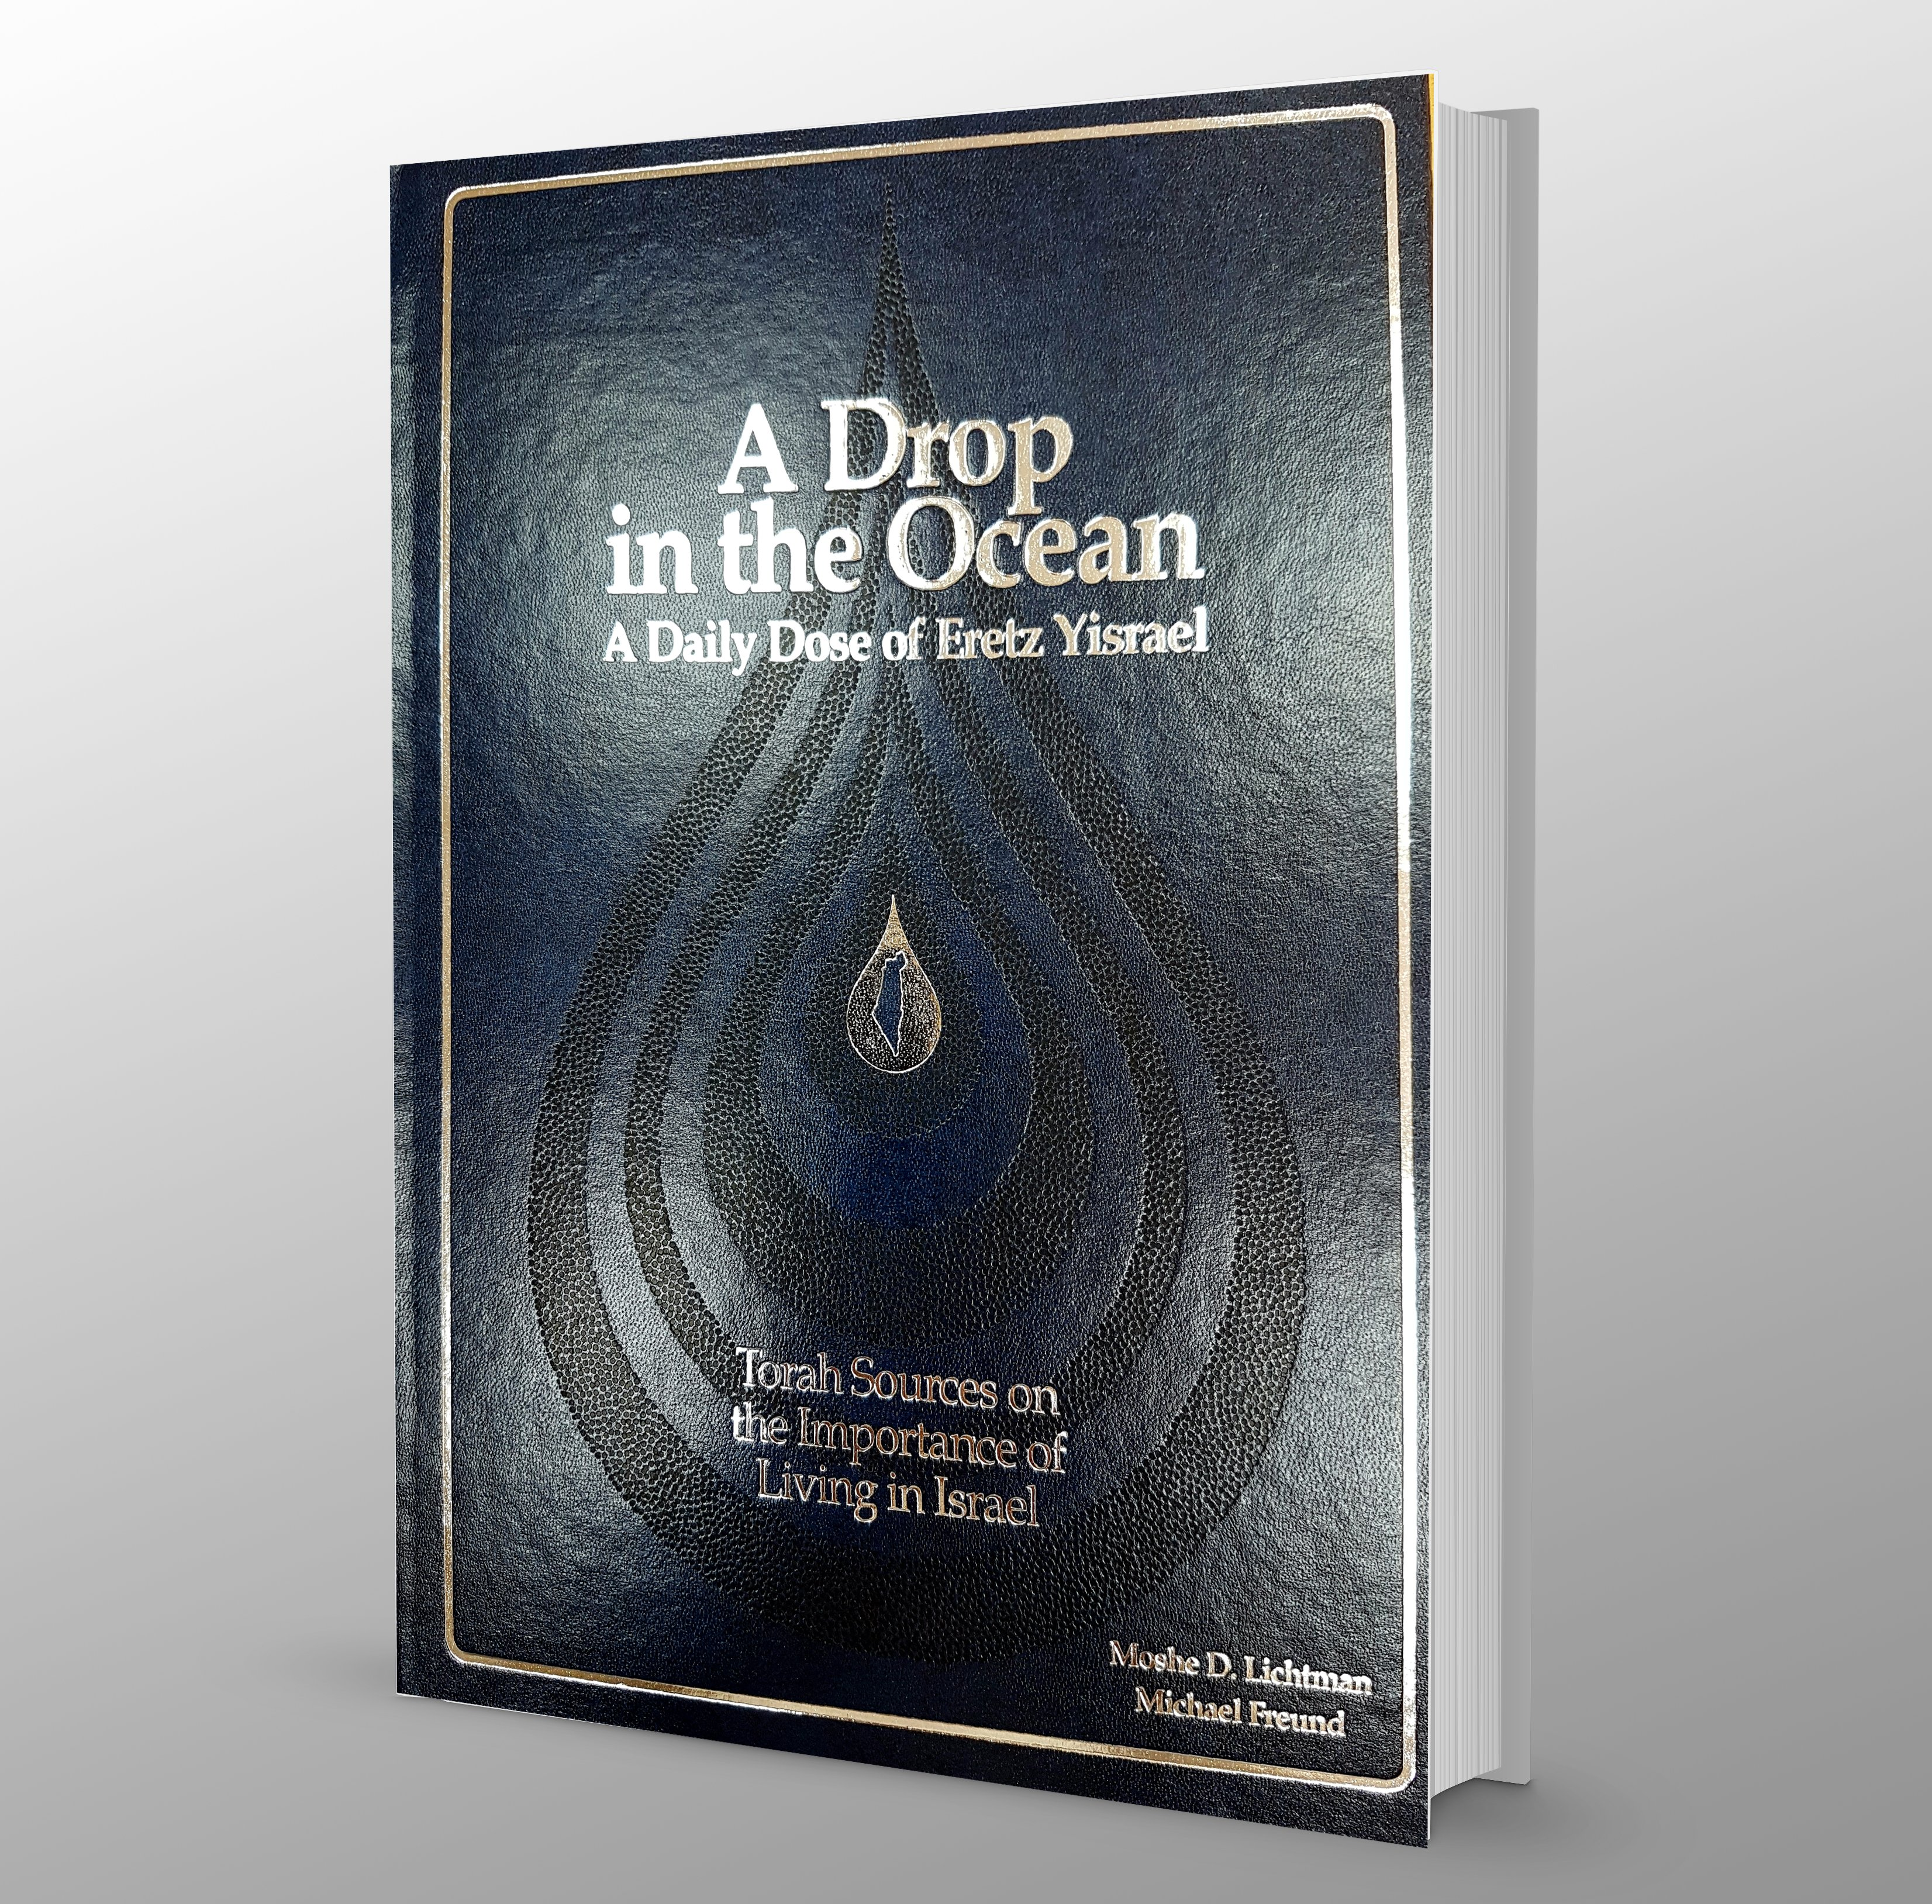 A Drop in the Ocean: A Daily Dose of Eretz Yisrael